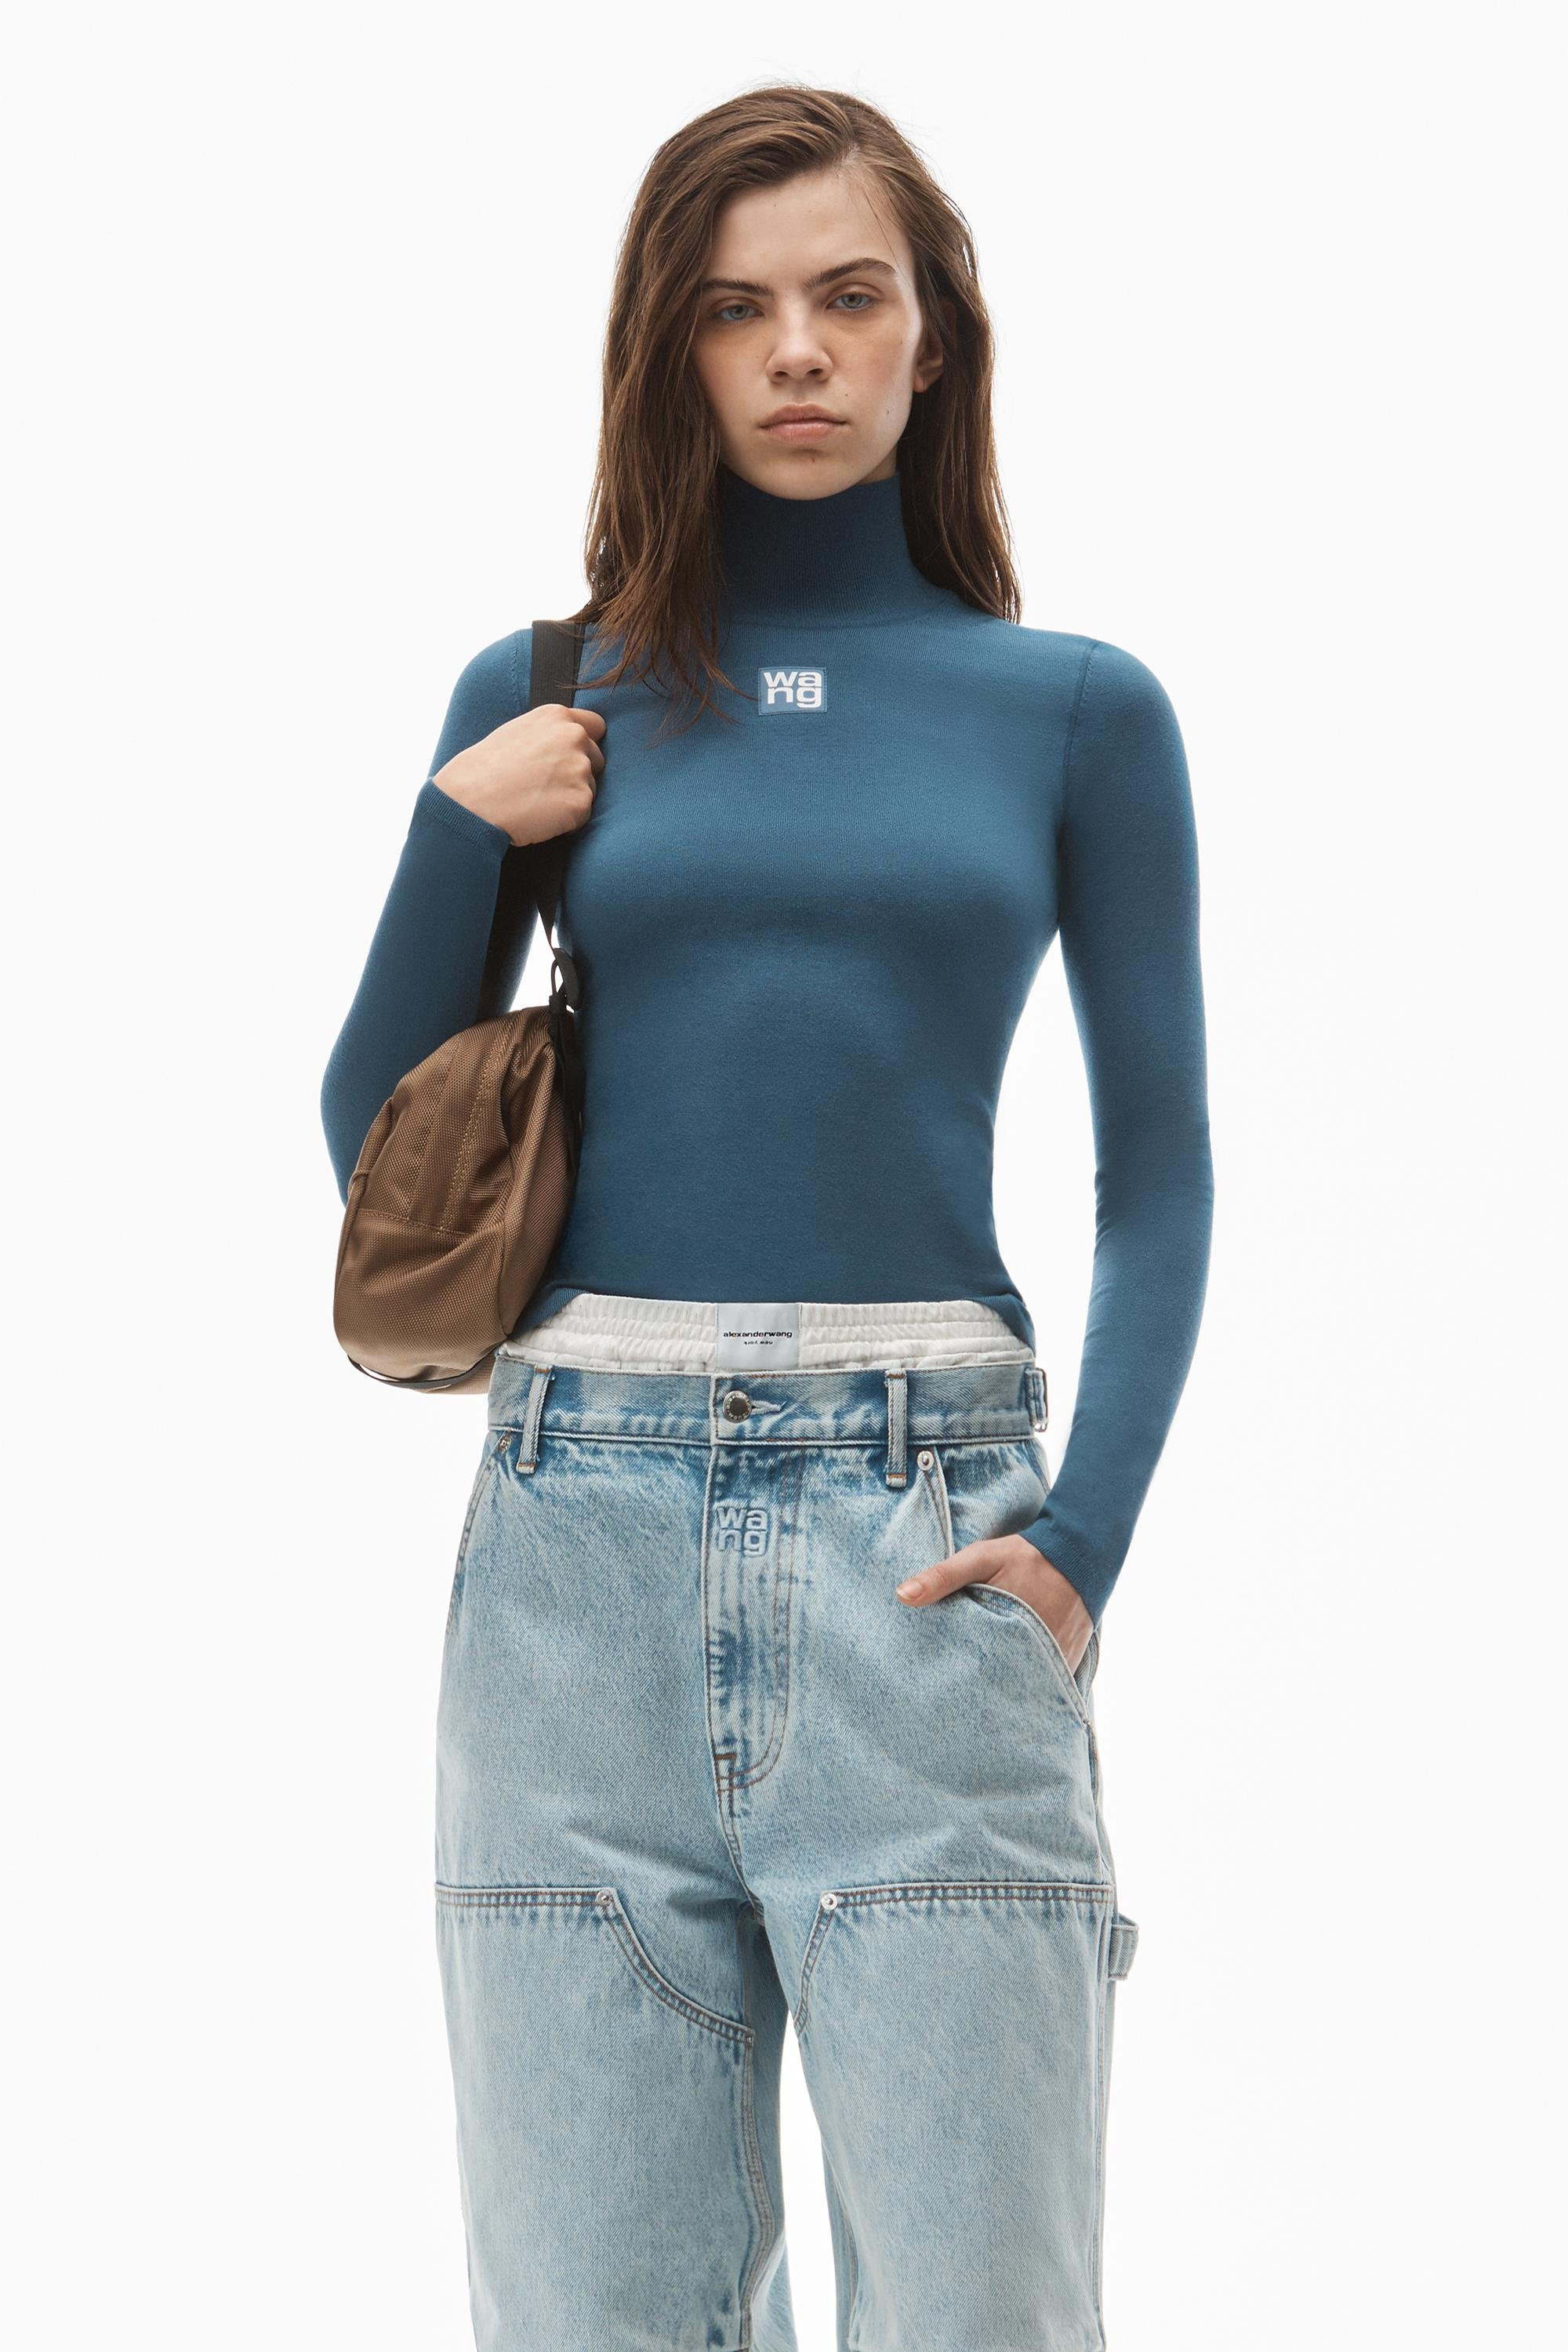 logo patch turtleneck top in bodycon knit